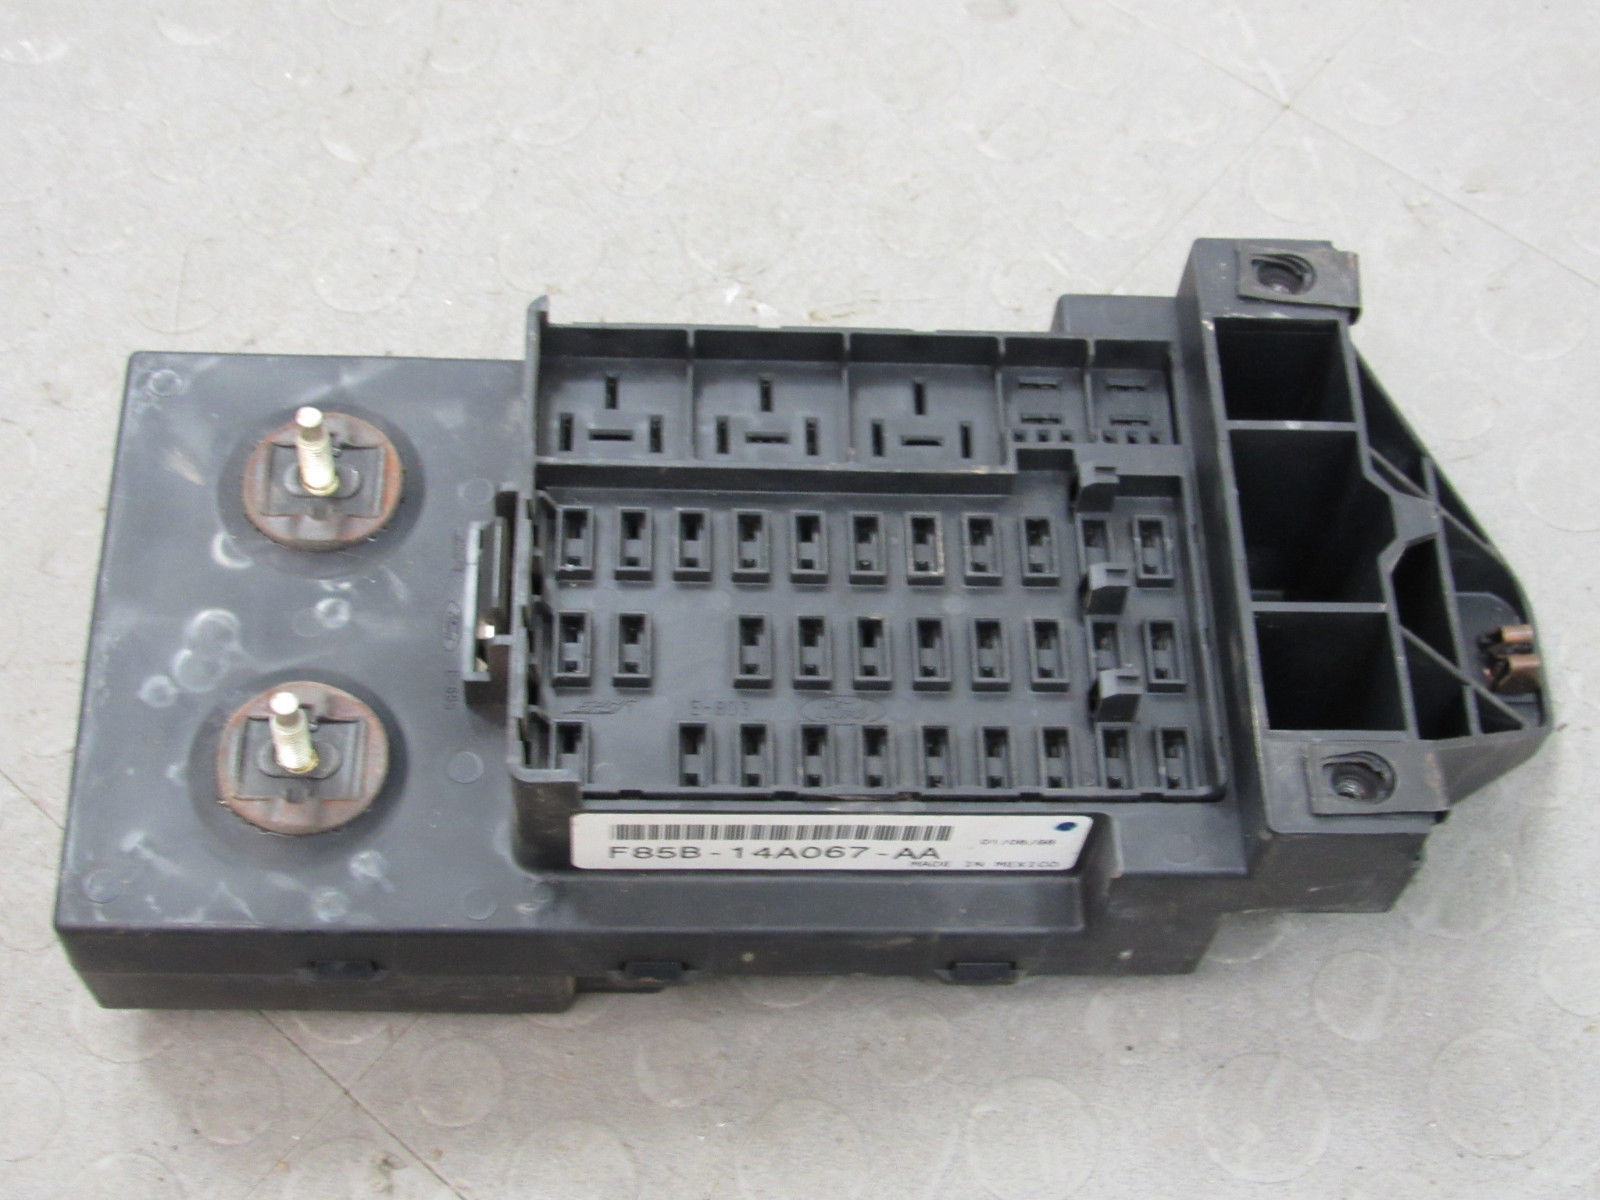 97-98 Ford F150 Interior Dash Fuse Box Junction Relay Block F85B-14A067-AA  M – Importapart